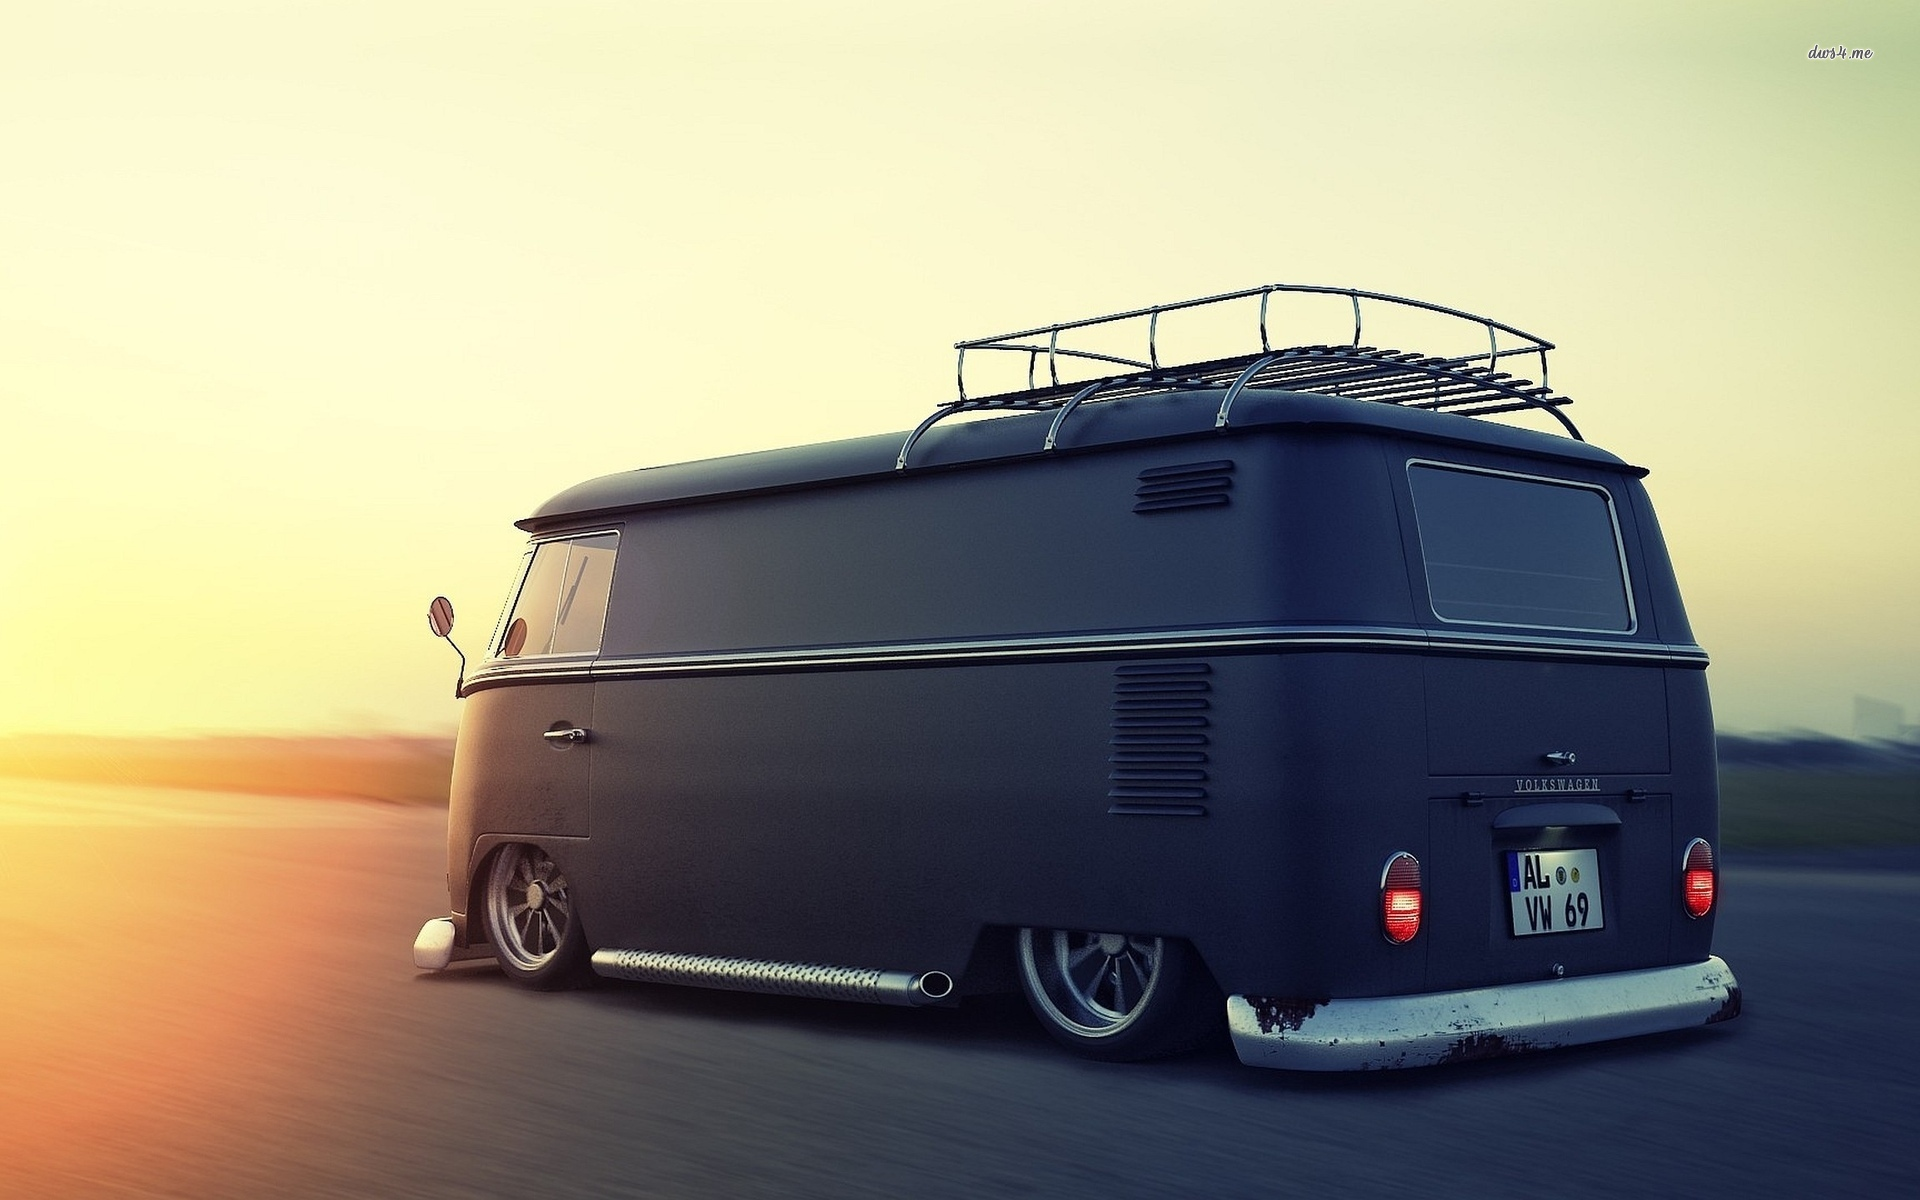 download Lowrider Volkswagen Wallpaper